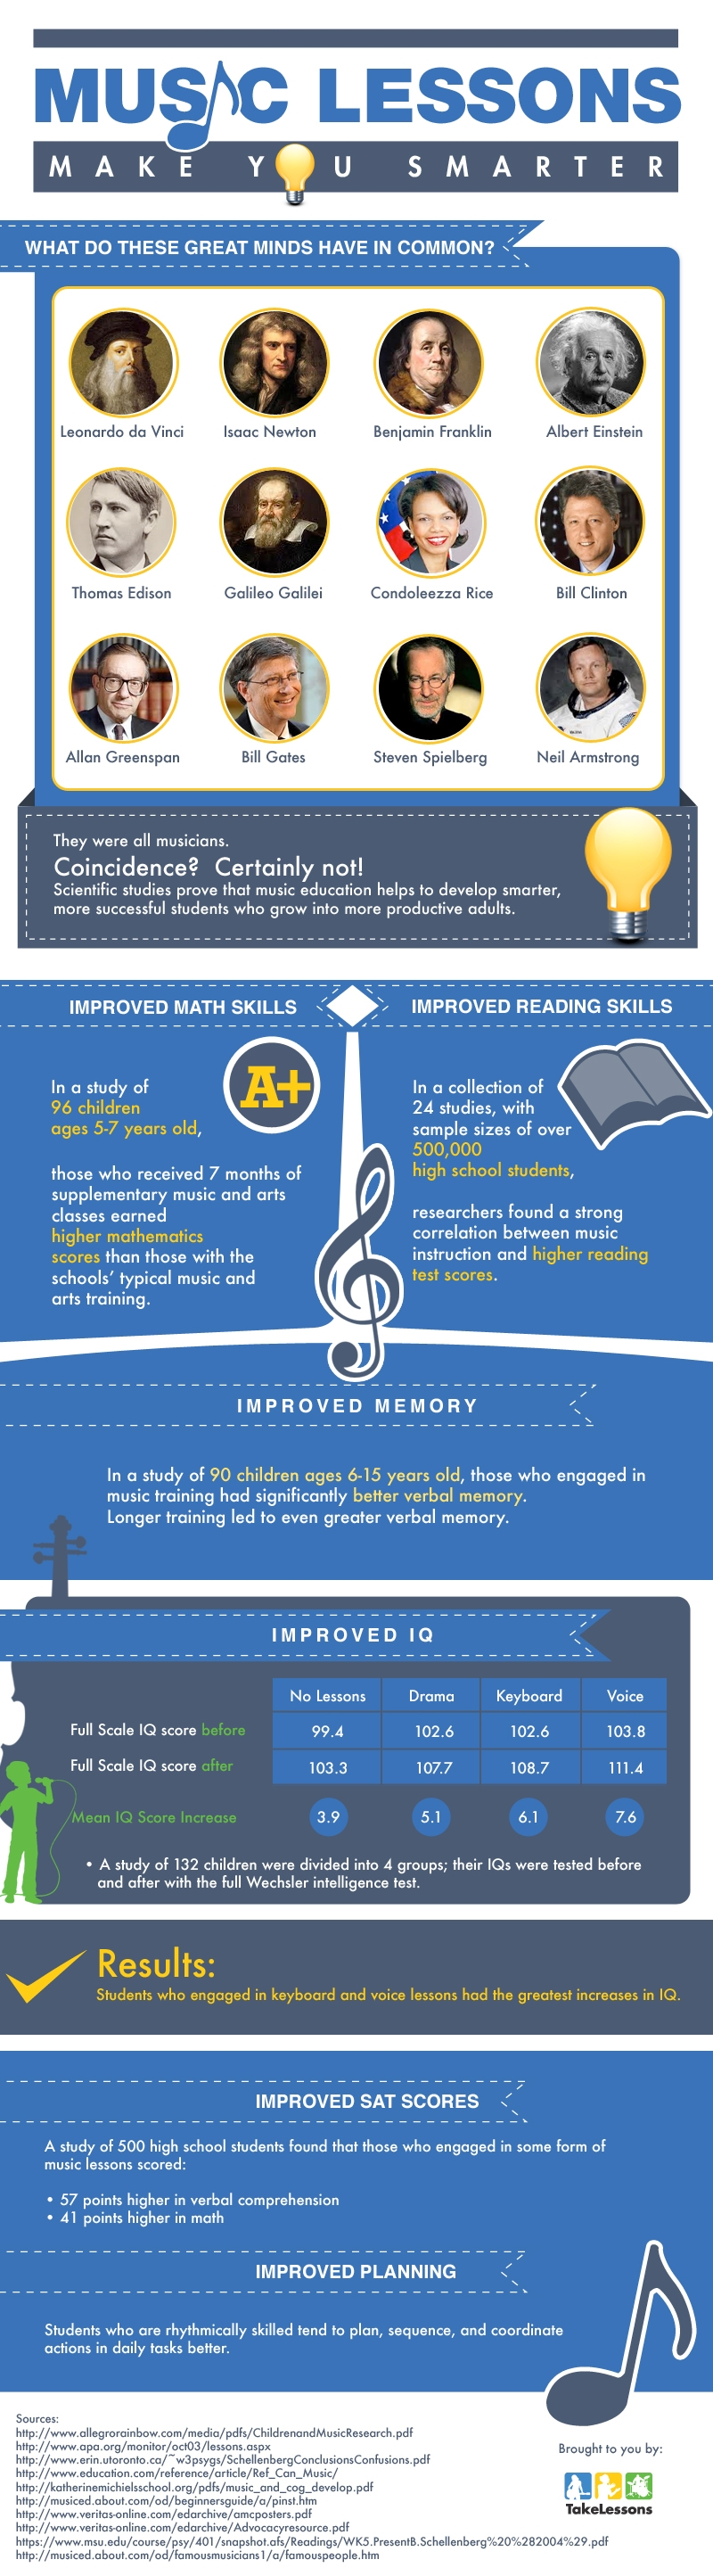 impact of music education on kids cognitive skills